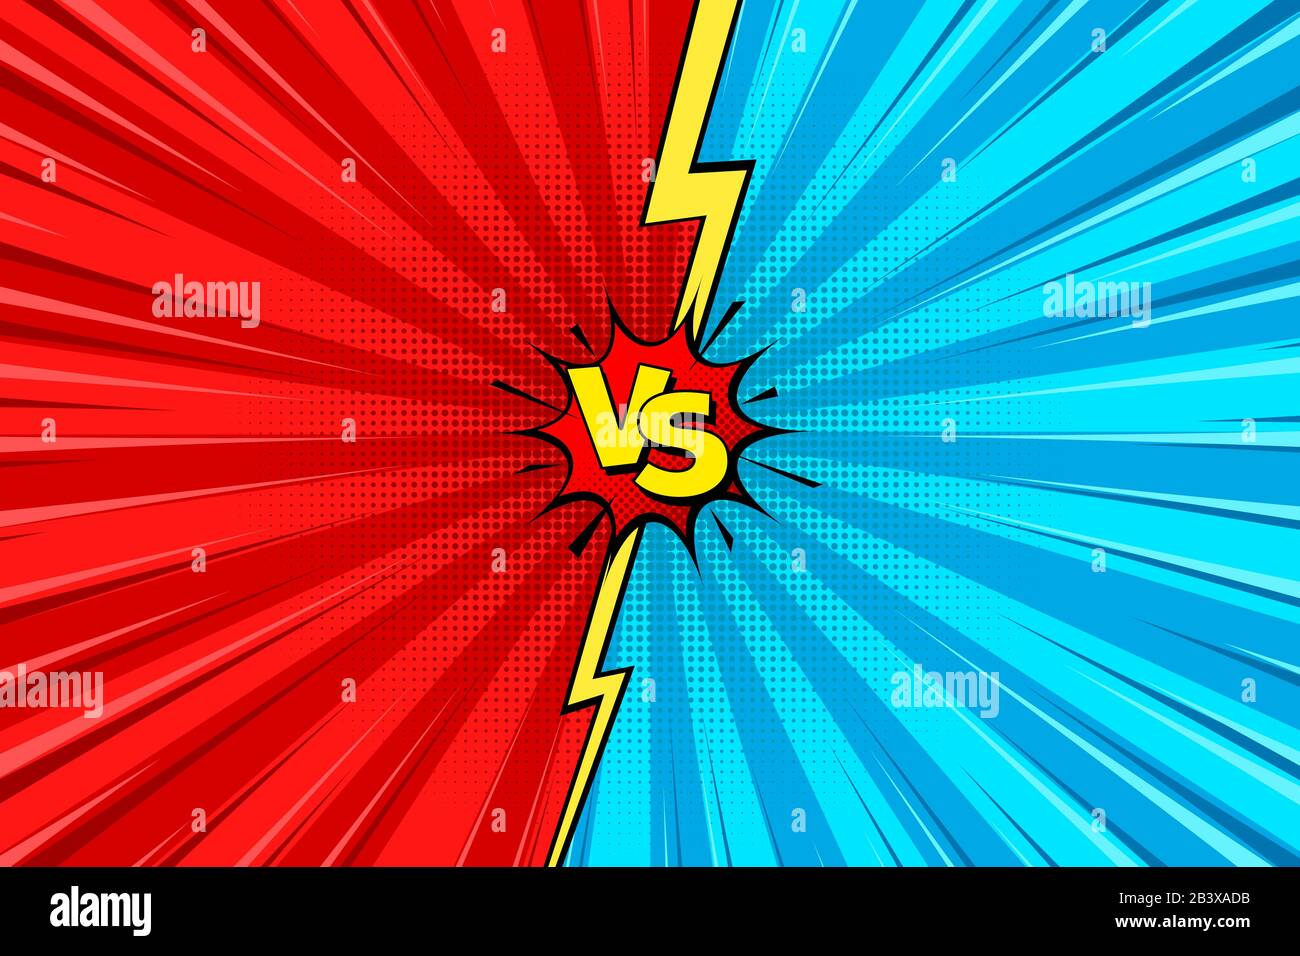 Cartoon Comic Background Fight Versus Comics Book Colorful Competition Poster With Halftone Elements Retro Pop Art Style Vector Illustration Stock Vector Image Art Alamy